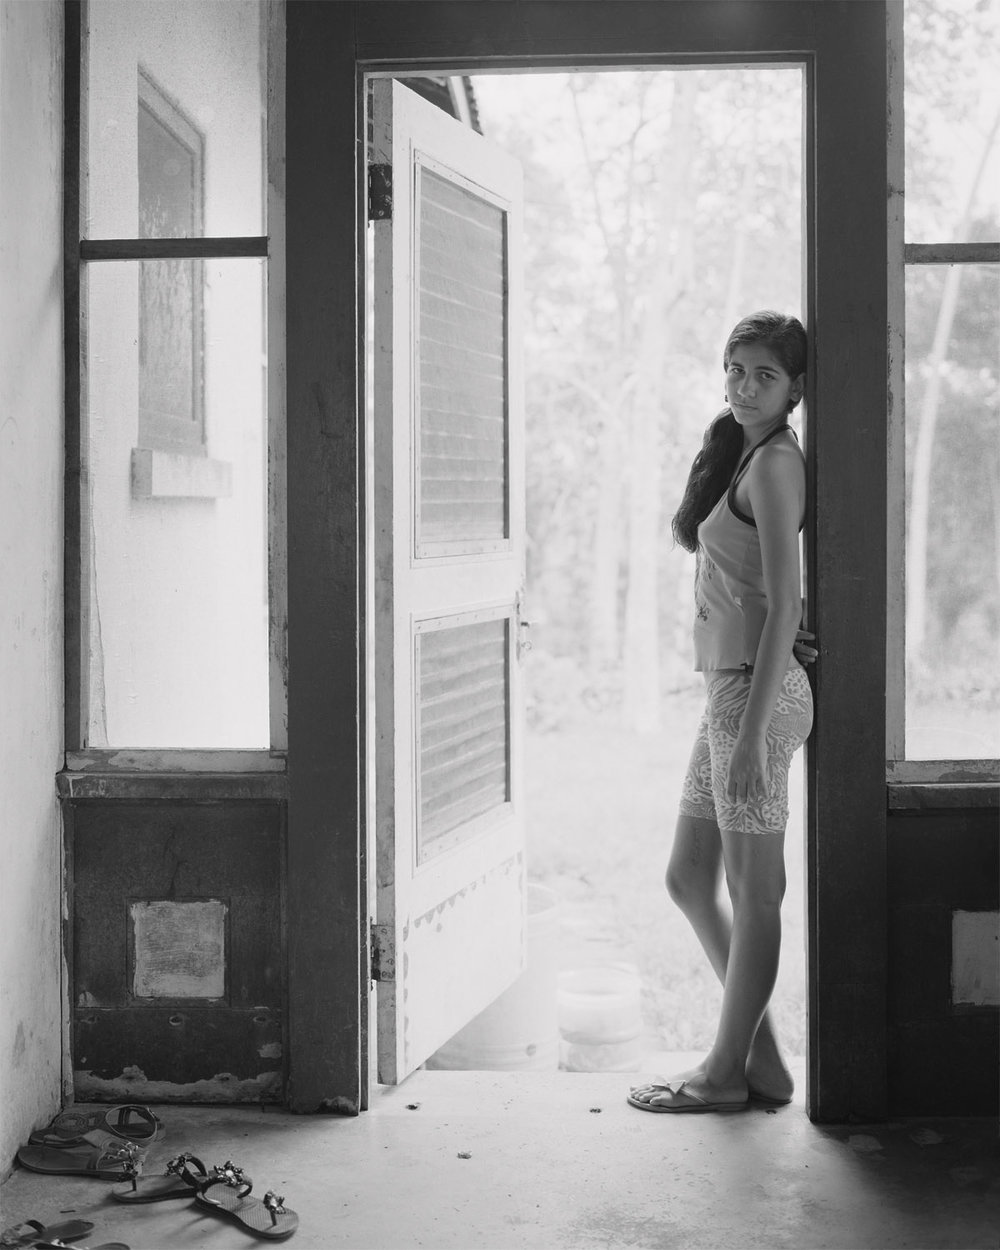 Késsia Souza, 14 years old in her home, original company housing built by Henry Ford employees, April, 2014, Fordlandia, Brazil. 2014/2018